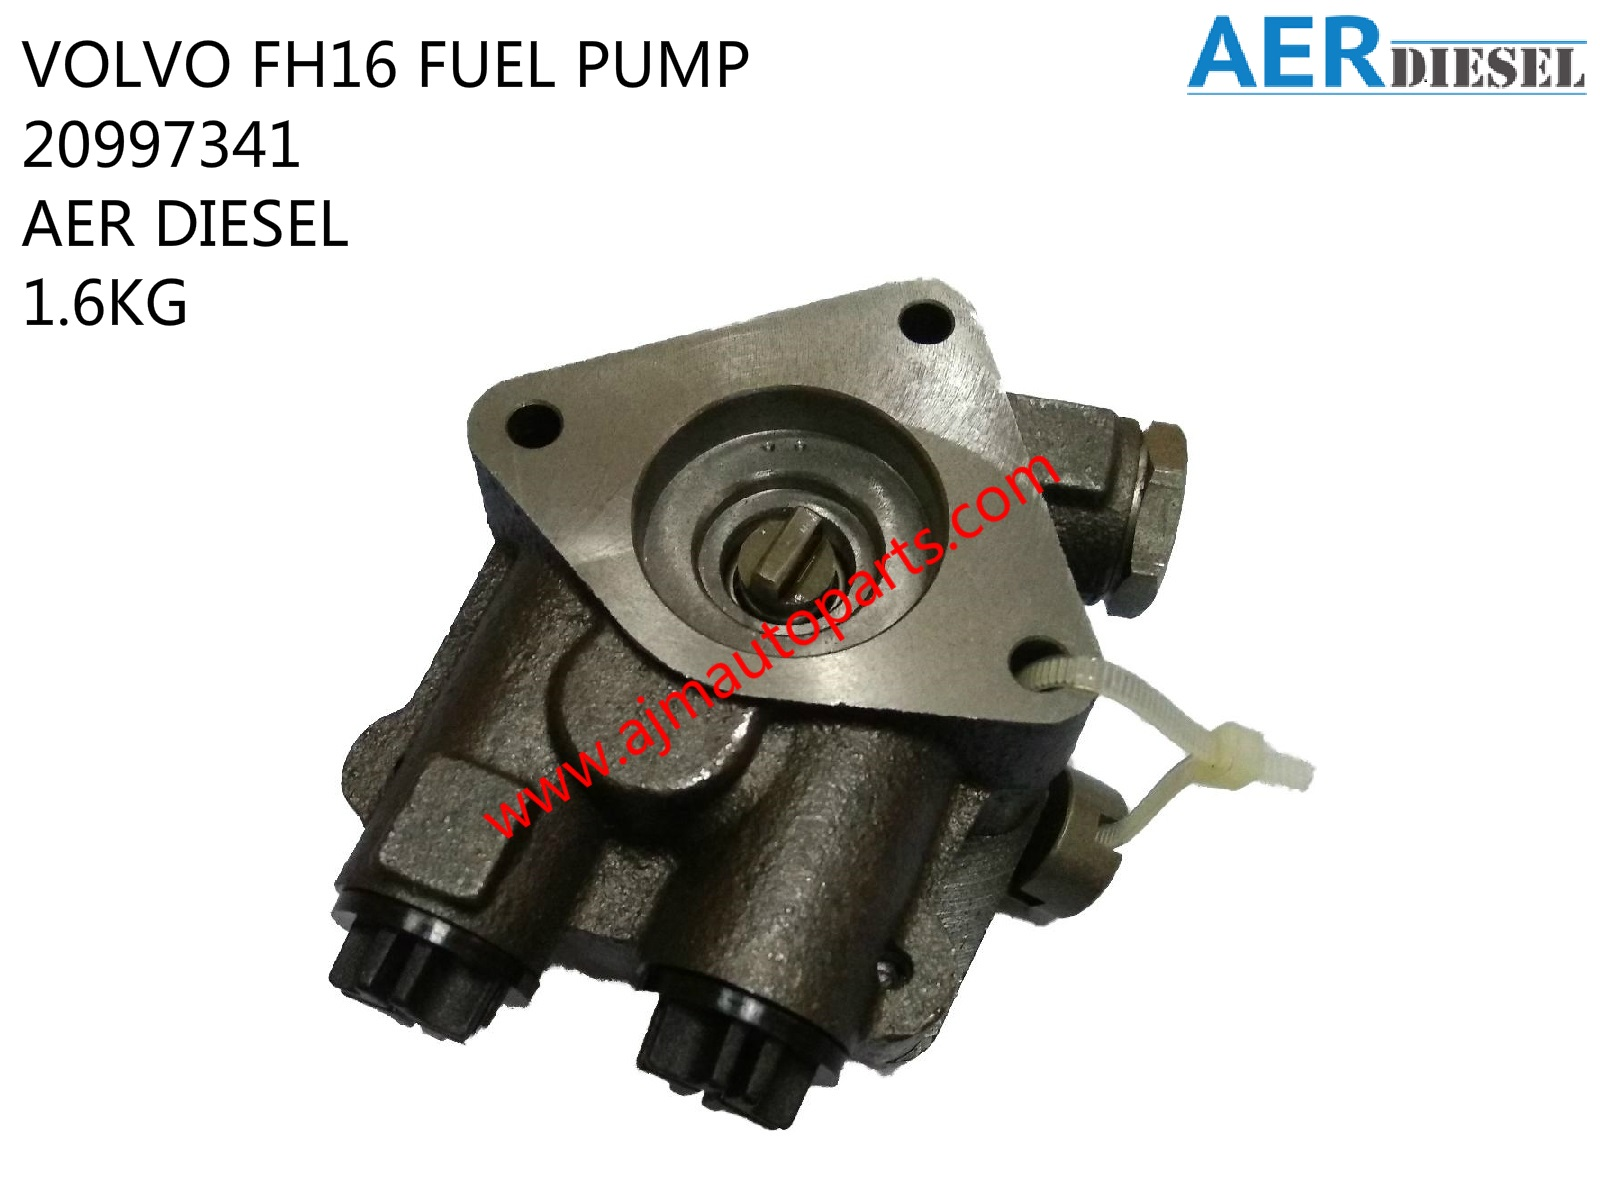 VOLVO FH16 FUEL PUMP-20997341